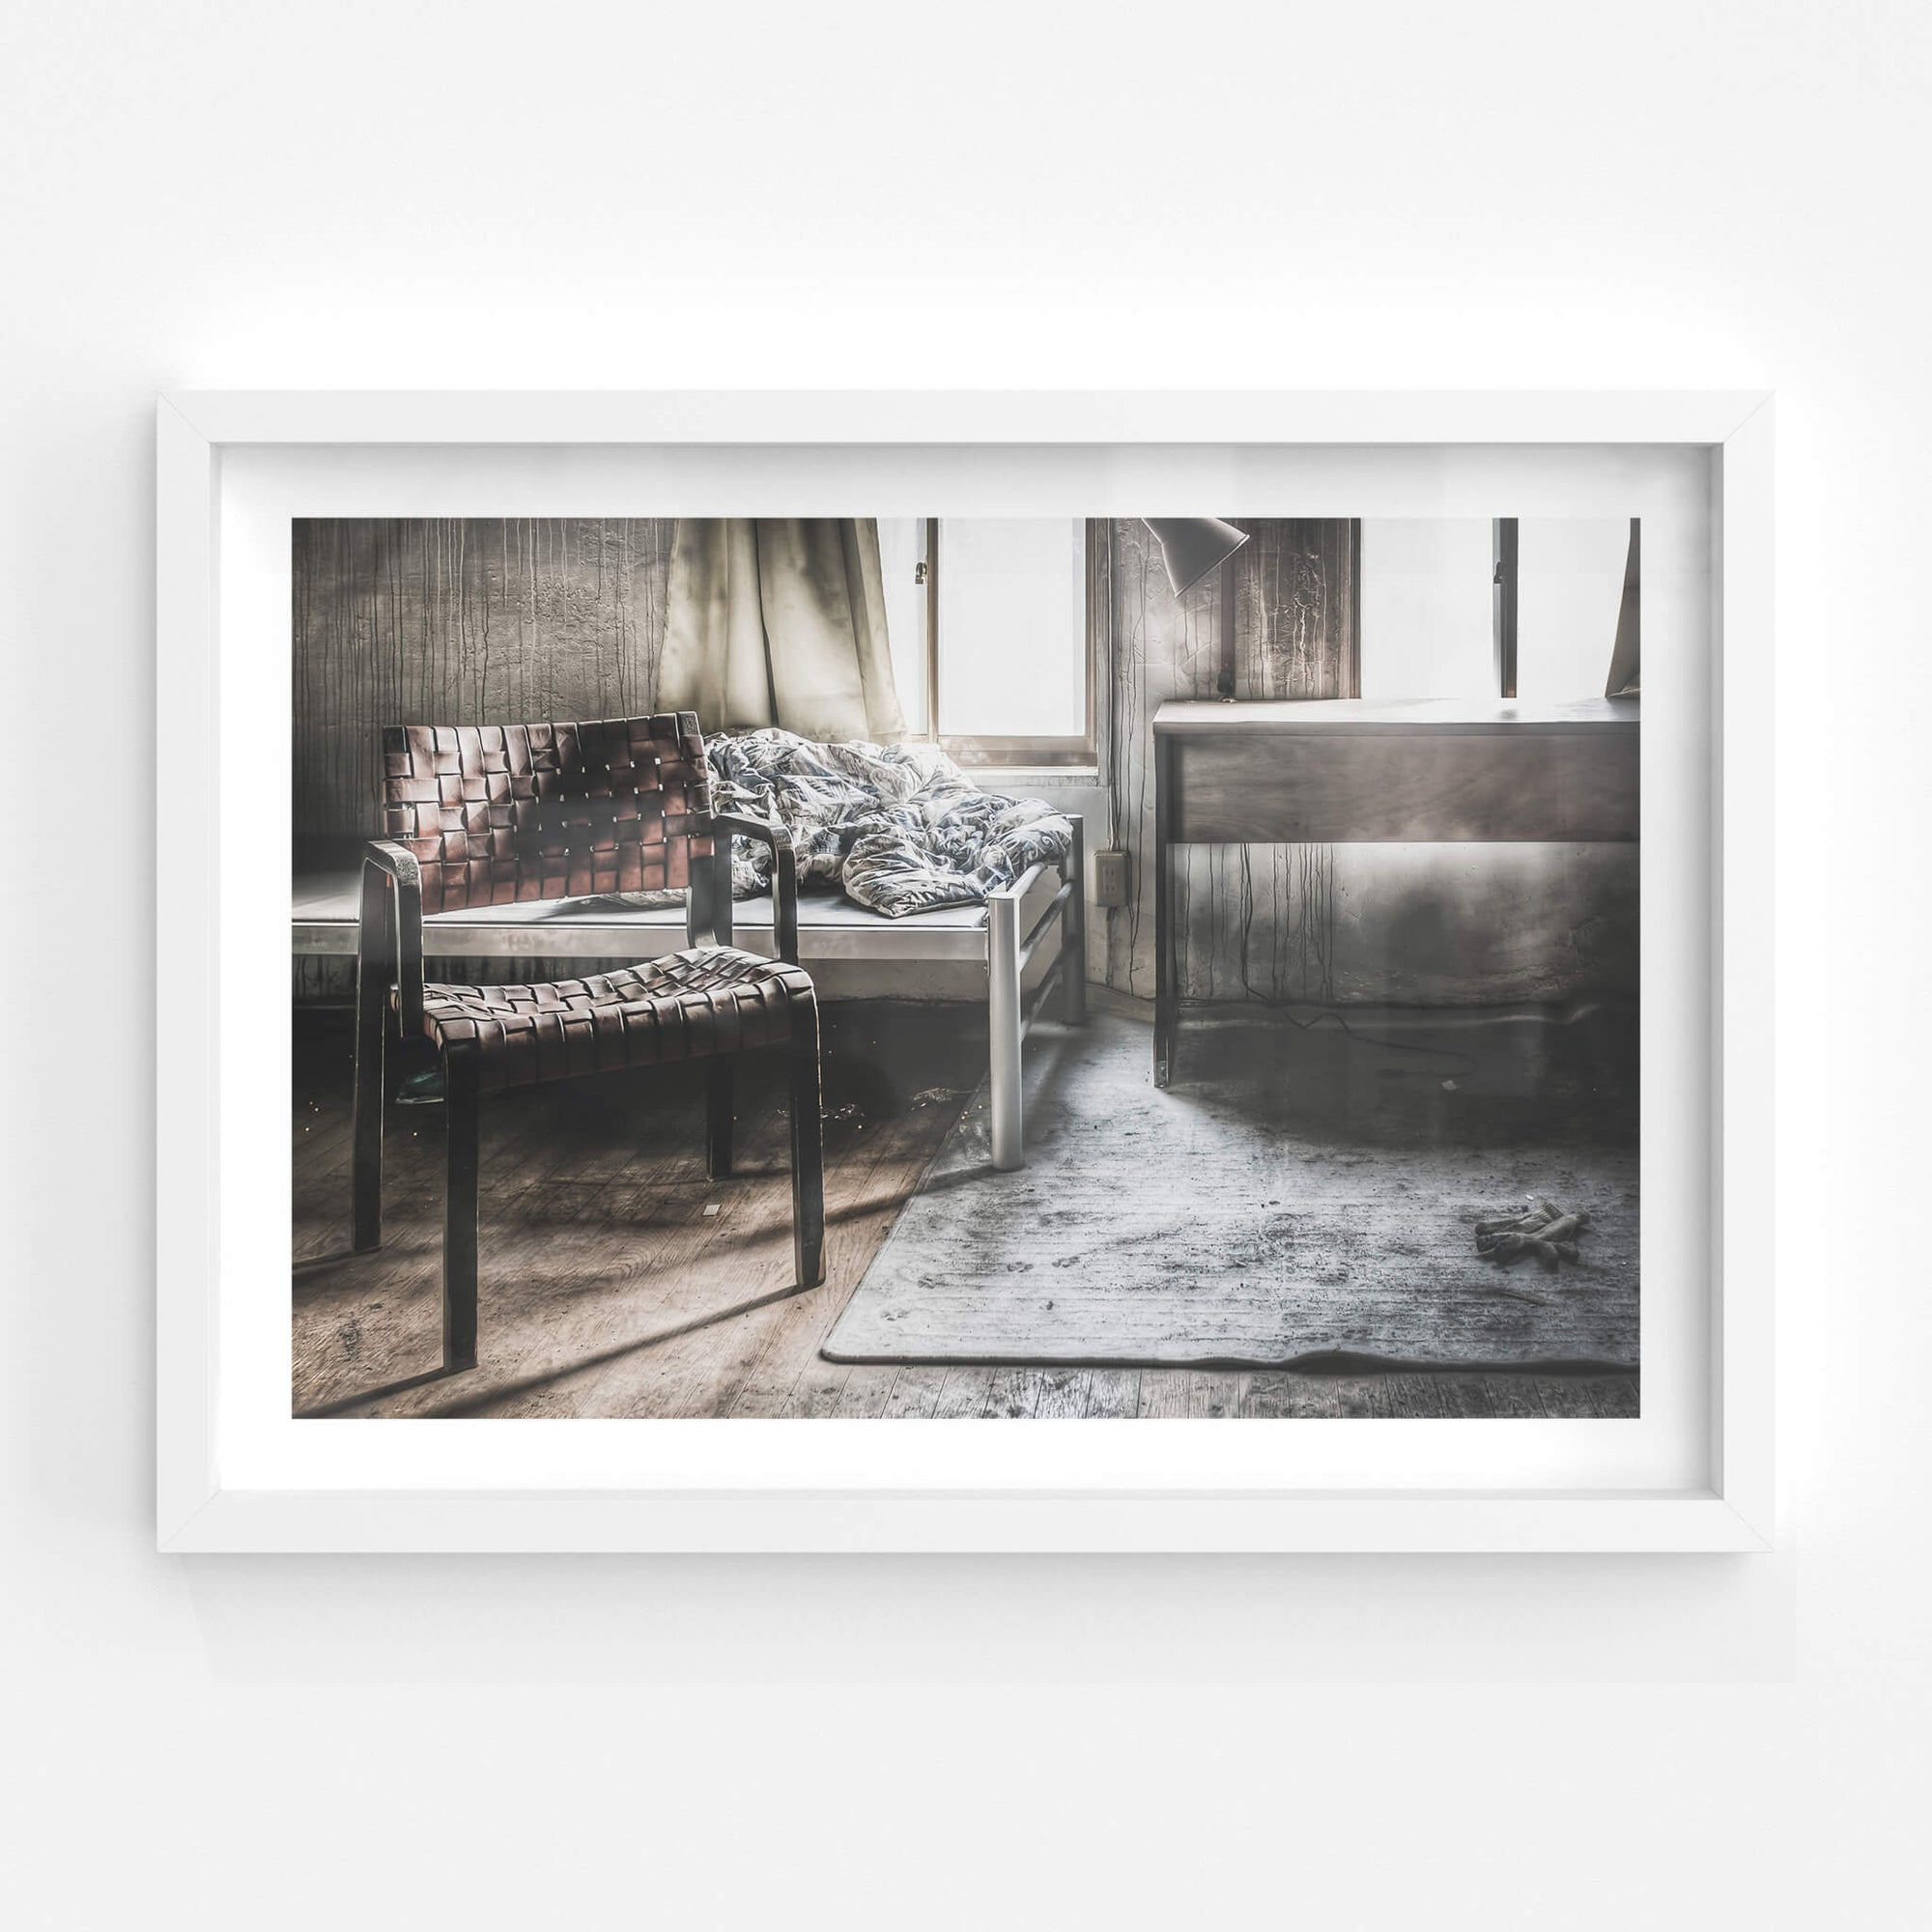 Bedroom Chair | Seika Dormitory Fine Art Print - Lost Collective Shop